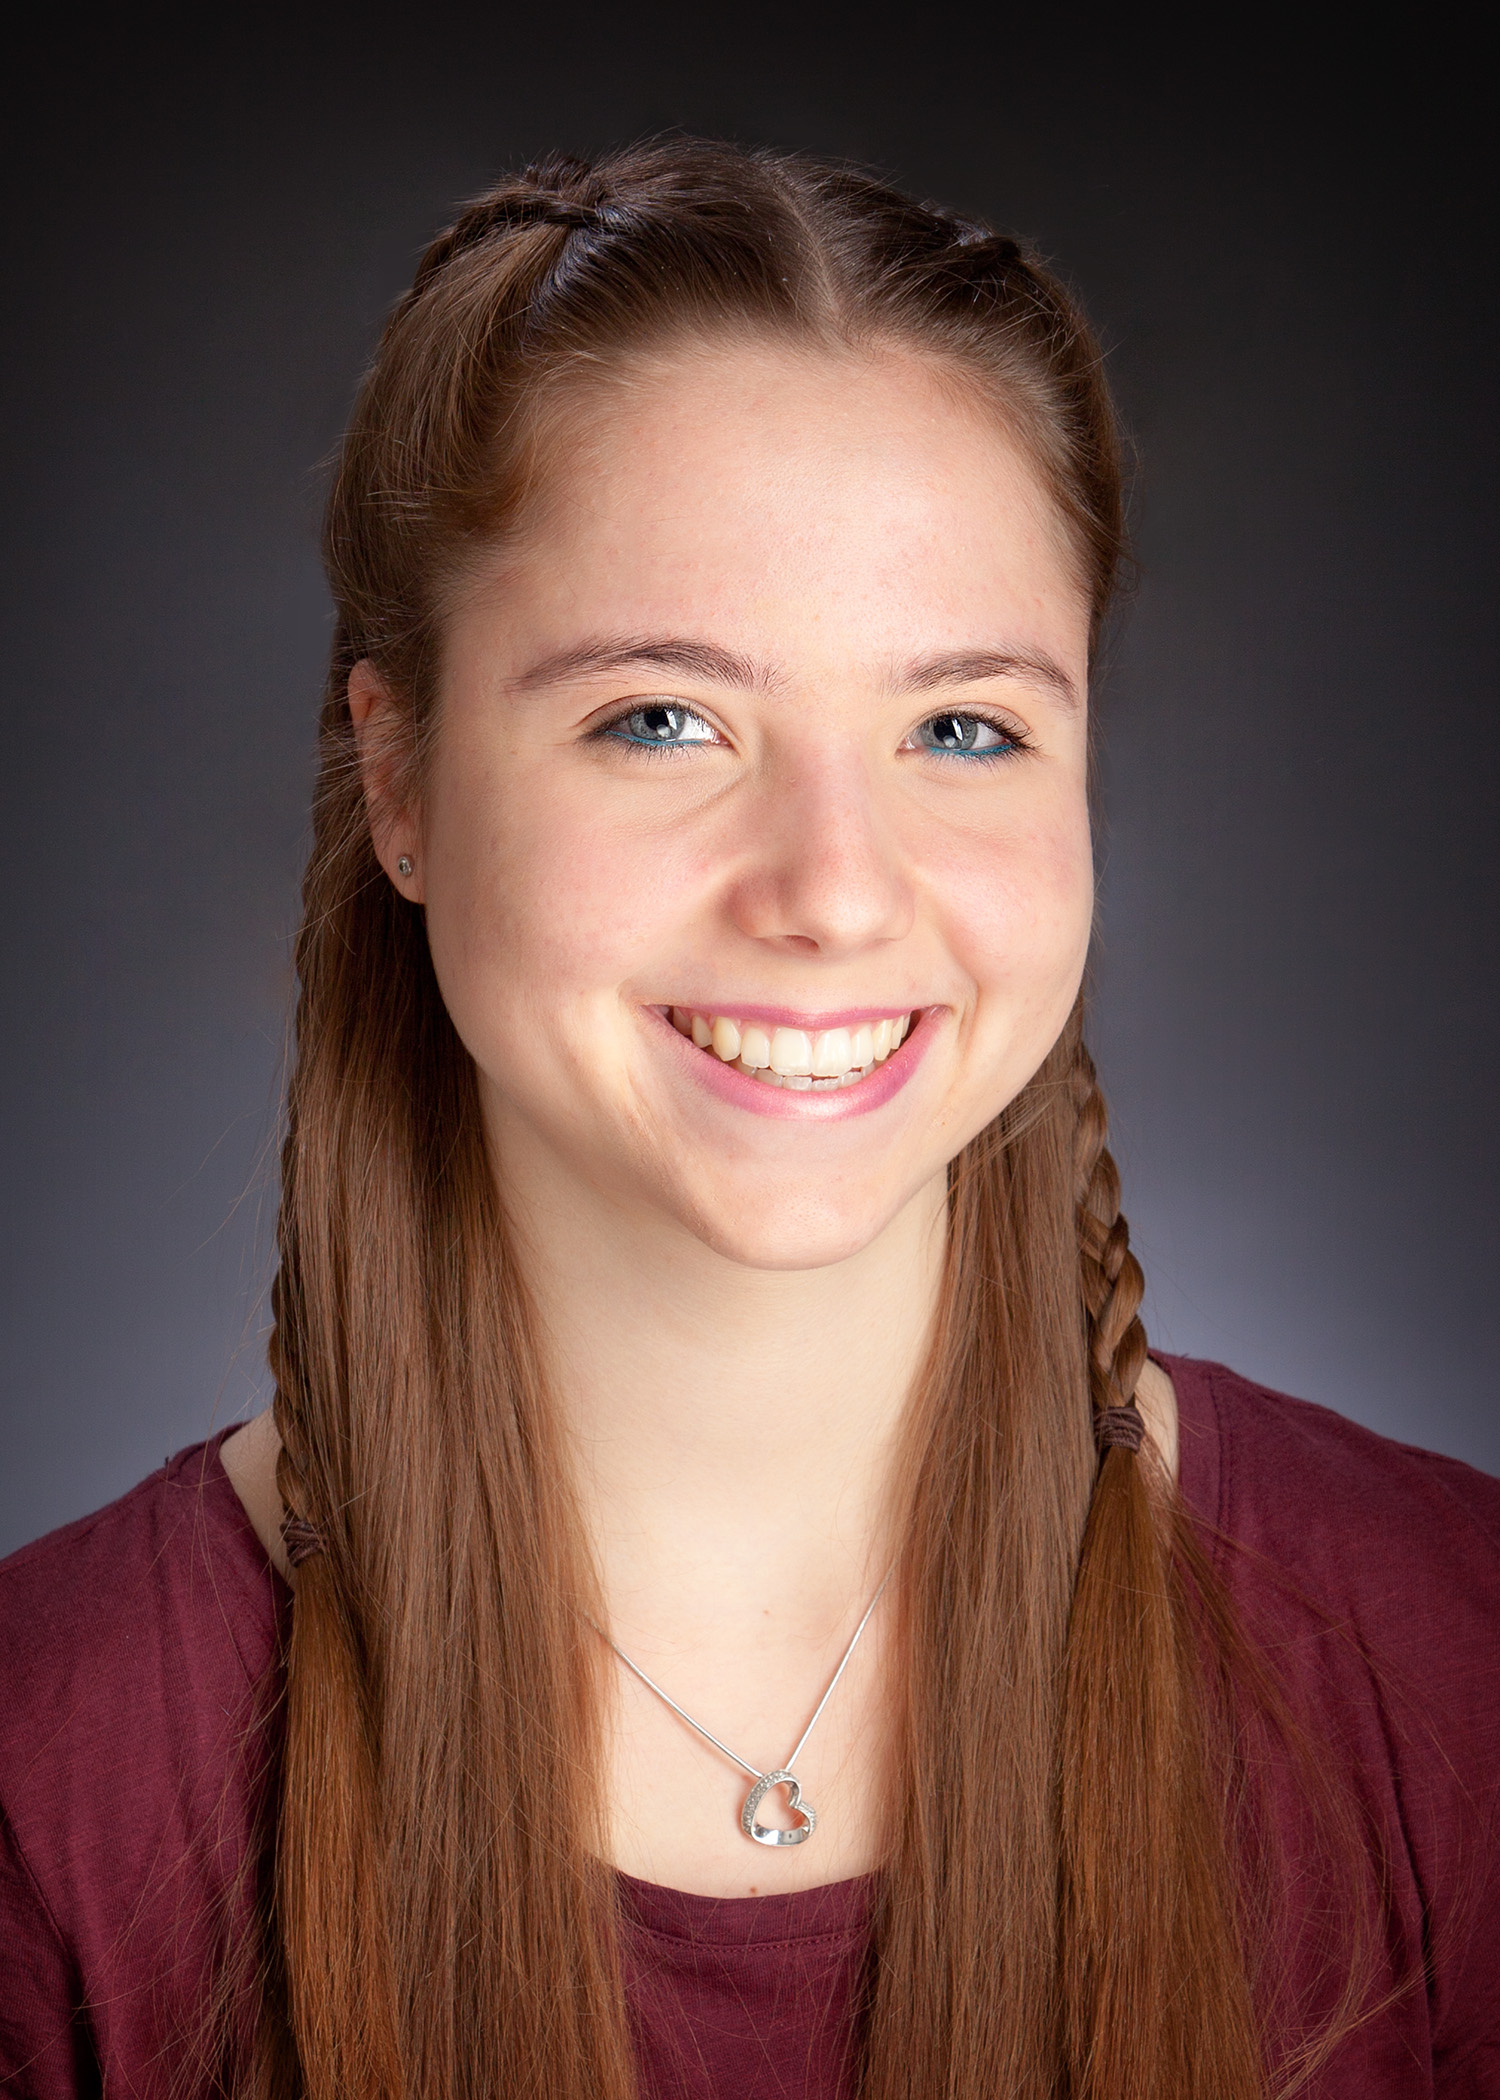 Julia Zeitler: I am an exchange student from Germany at FJSHS and go in the 11th grade. I am involved in Track, Softball, Cross Country, FCCLA, Yearbook, Leo Lions and StuCo. I really enjoy the time here and Kansas has become a second home for me.